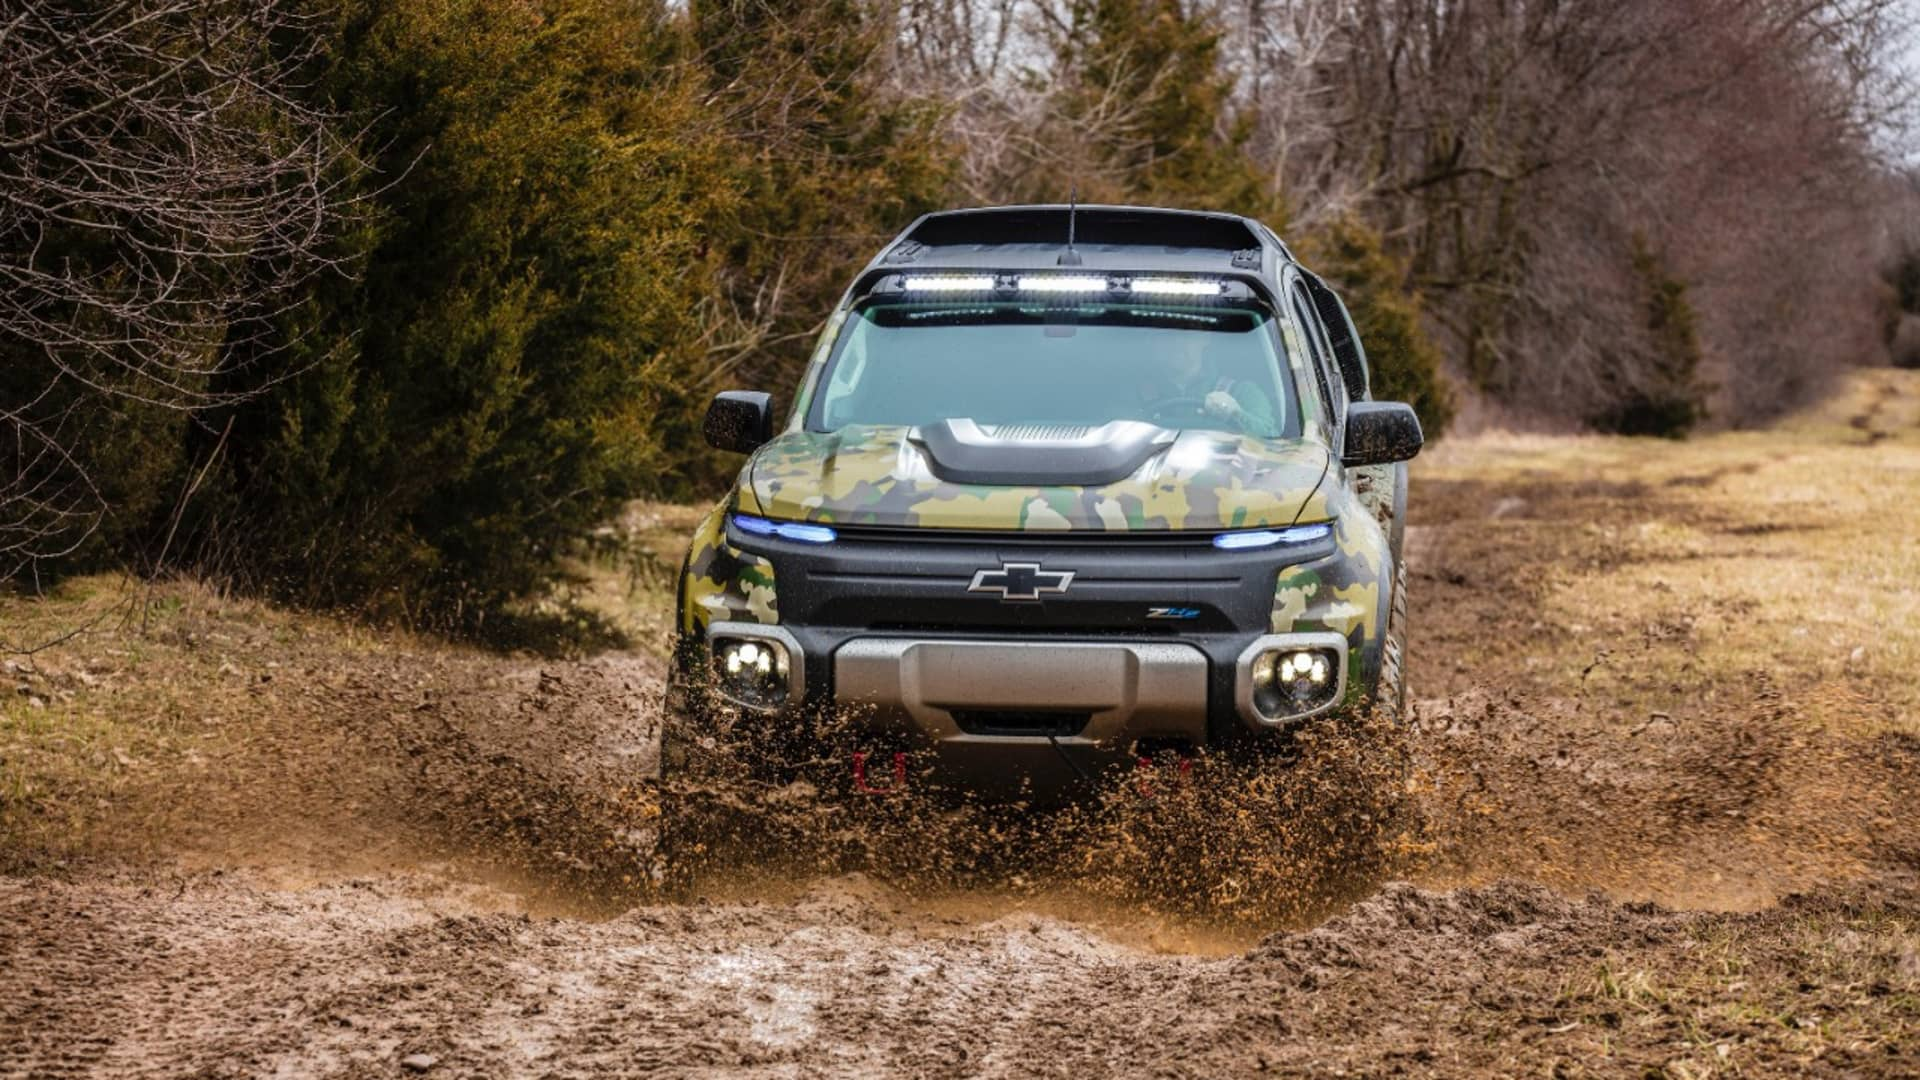 The U.S. Army started evaluating Chevrolet Colorado ZH2 fuel cell electric truck in 2017. It is based on GM's Colorado ZR2 off-road pickup.